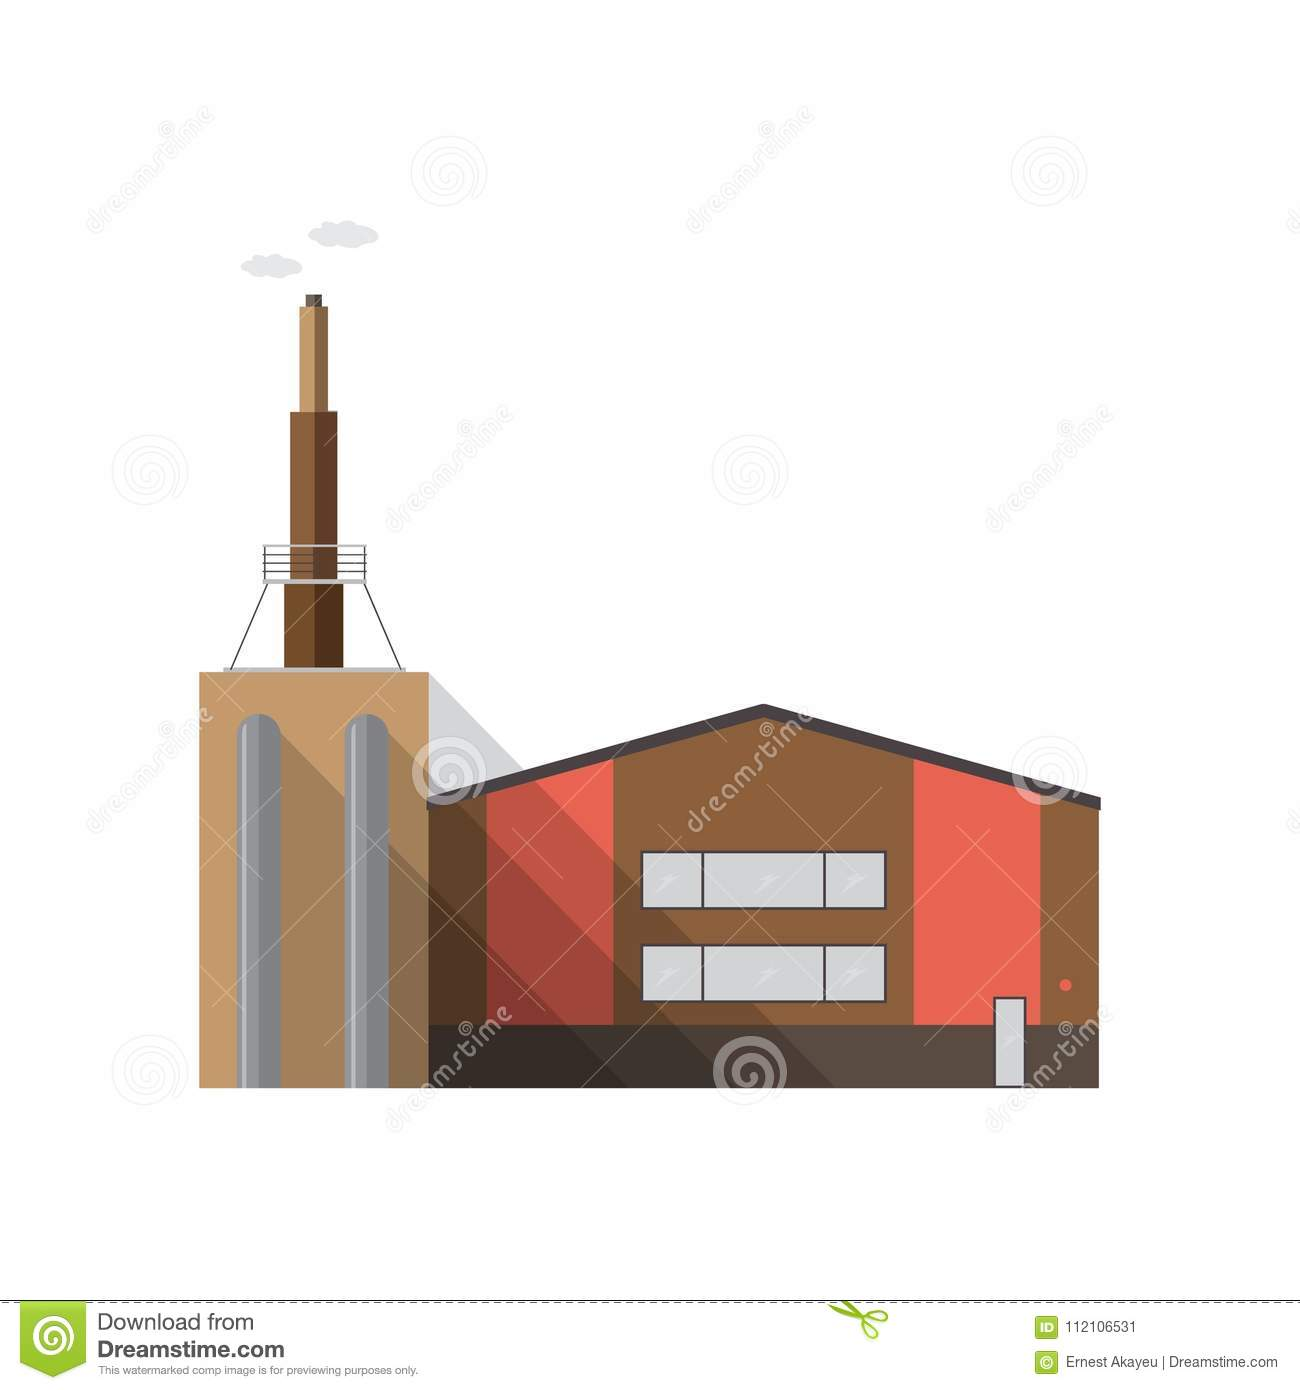 Modern factory building with pipe emitting smoke isolated on white background. Manufacturing plant of contemporary